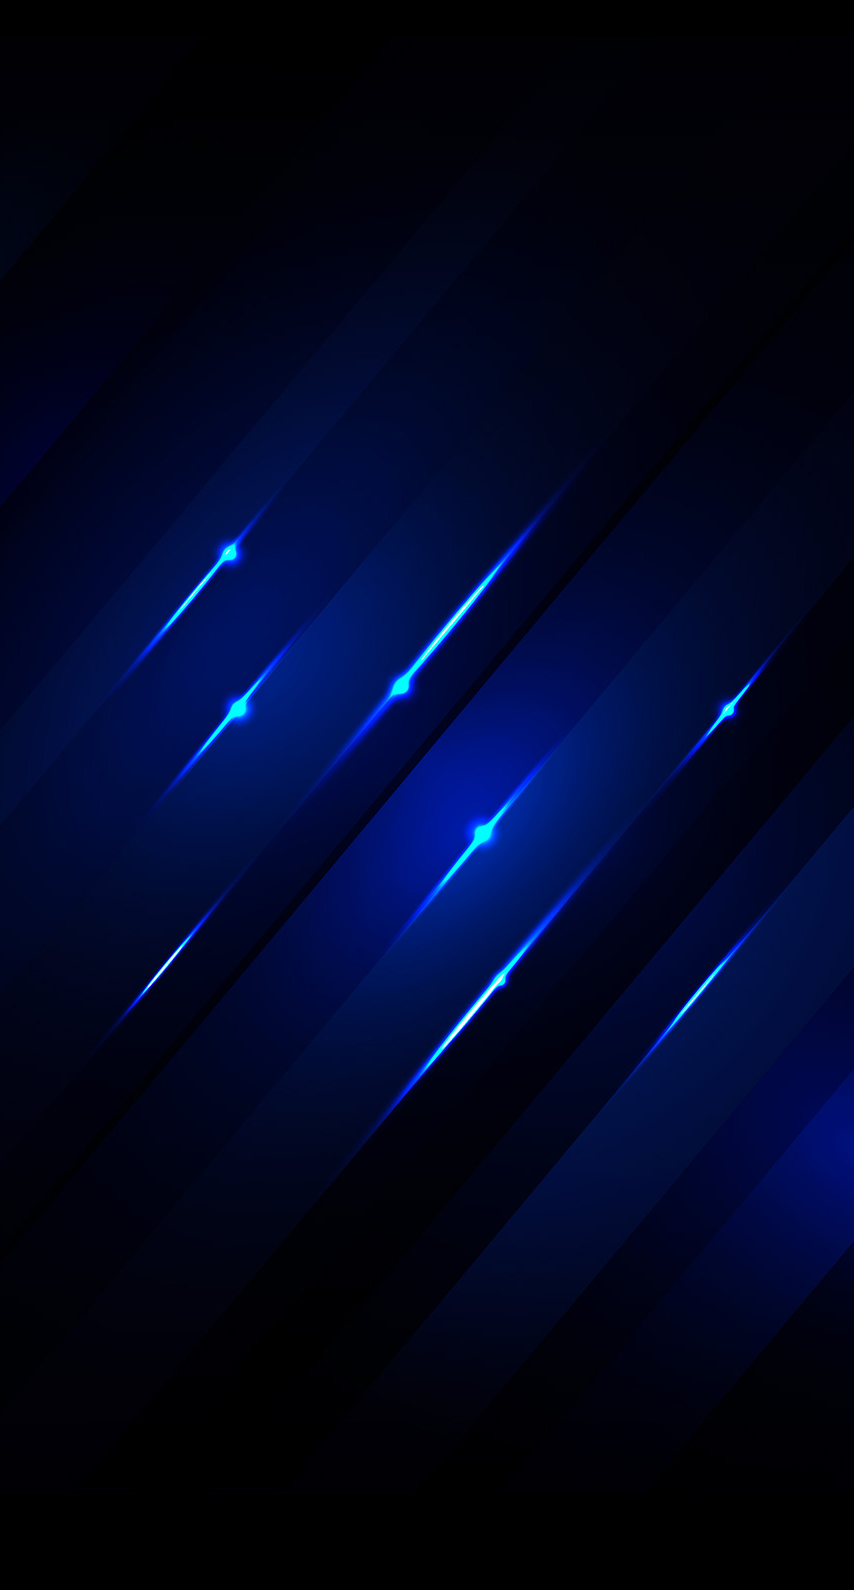 darkness, electric blue